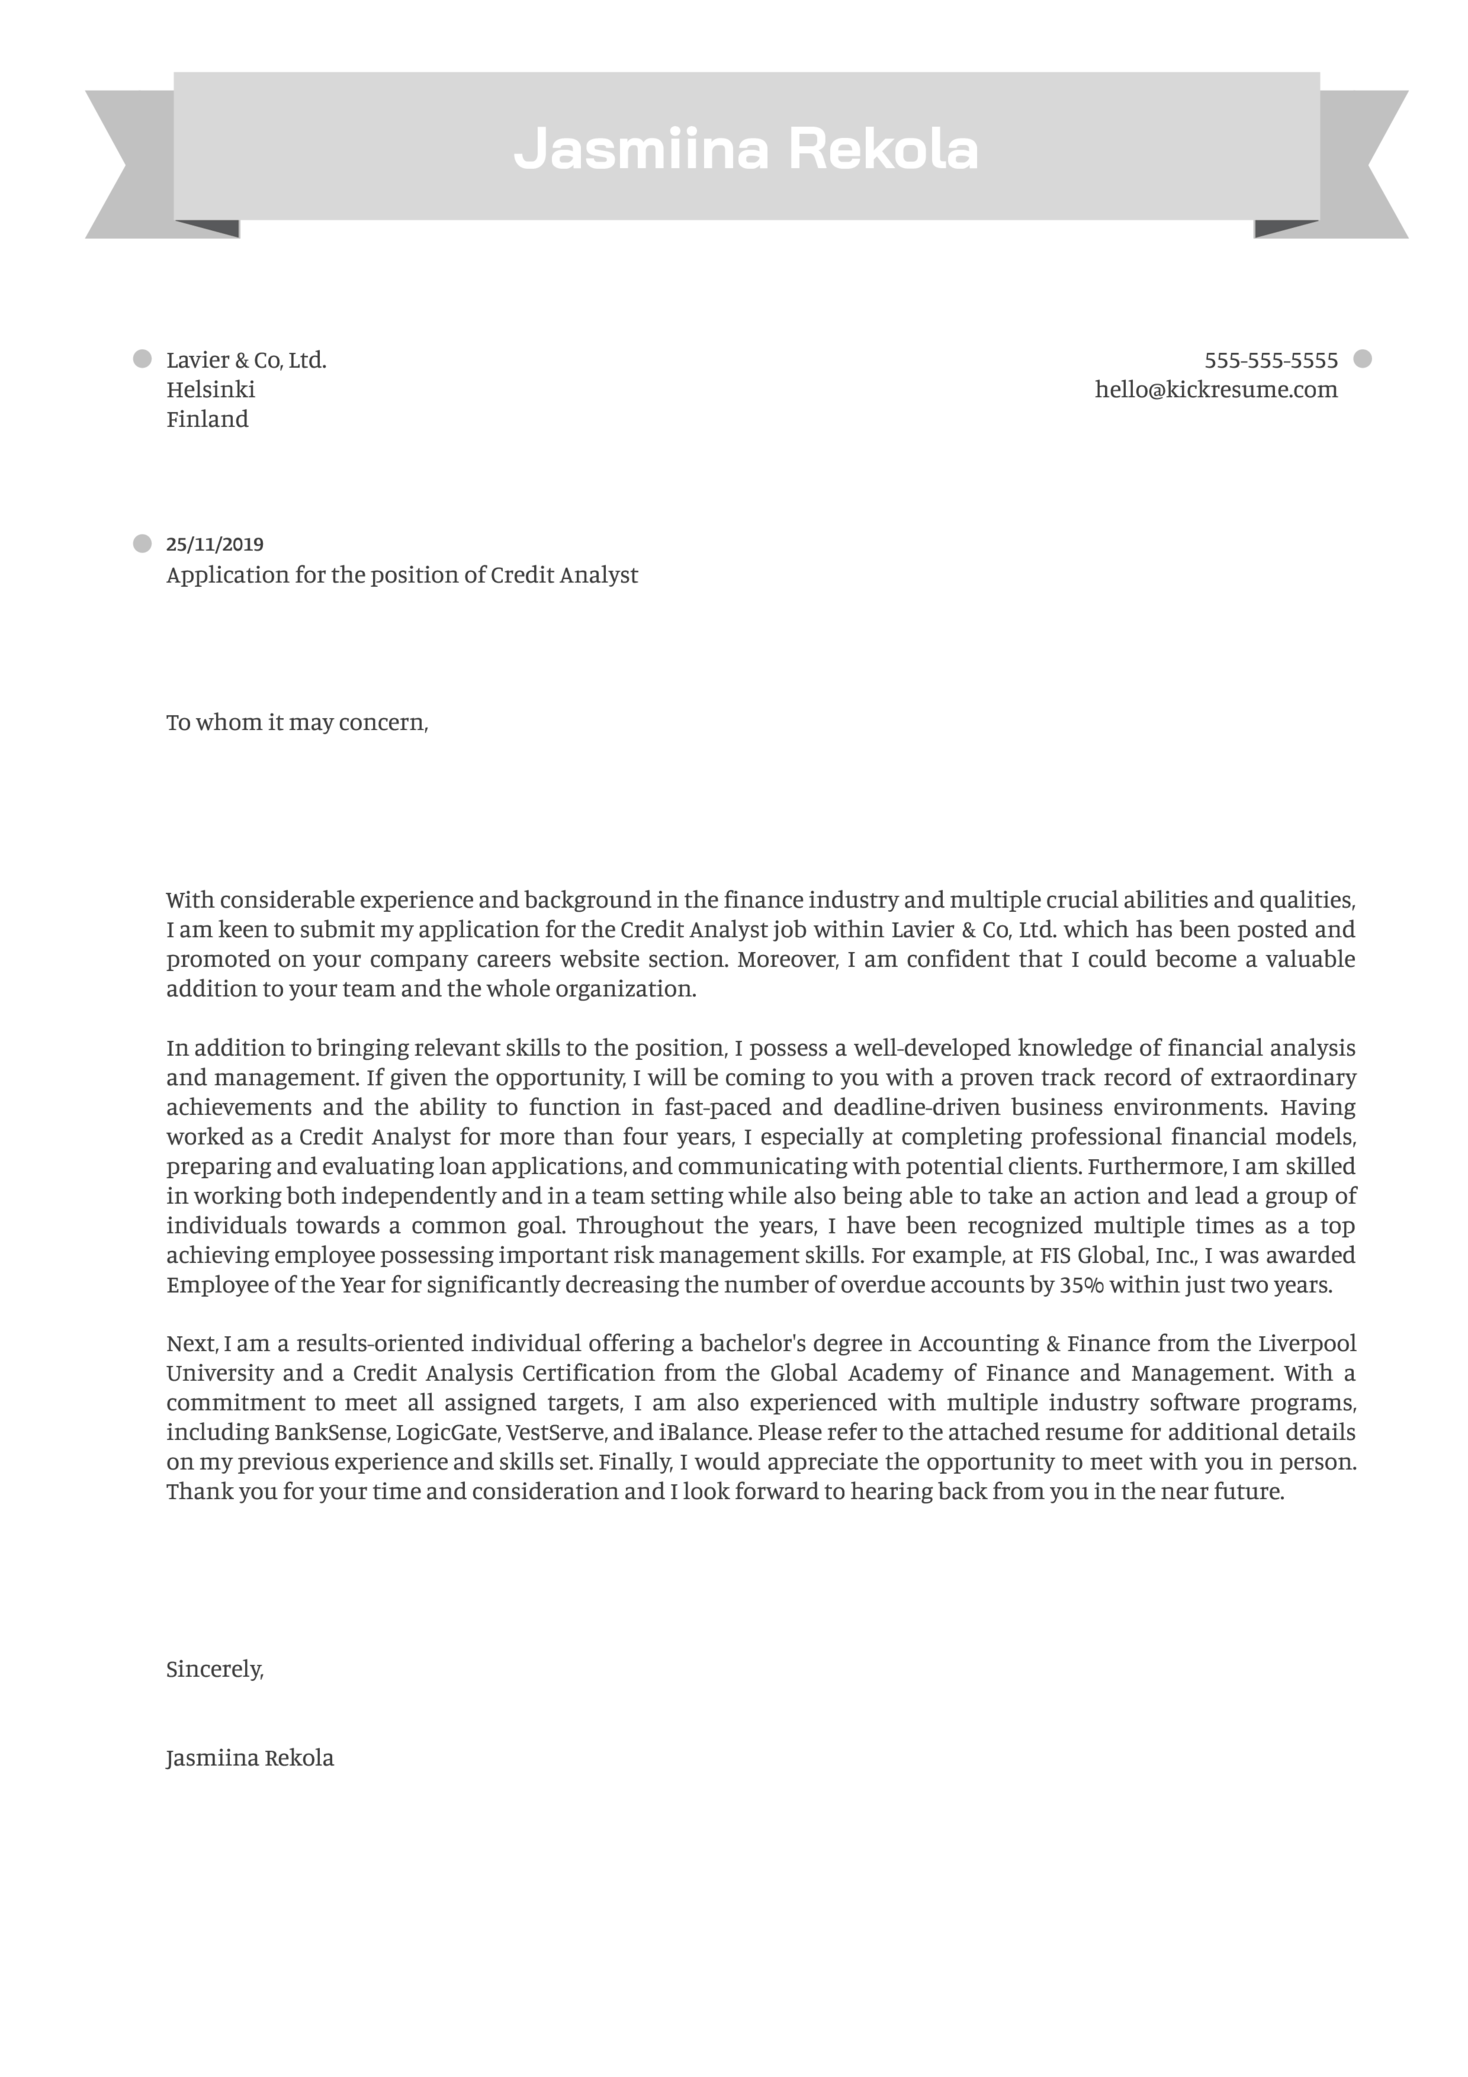 Credit Analyst Cover Letter Sample